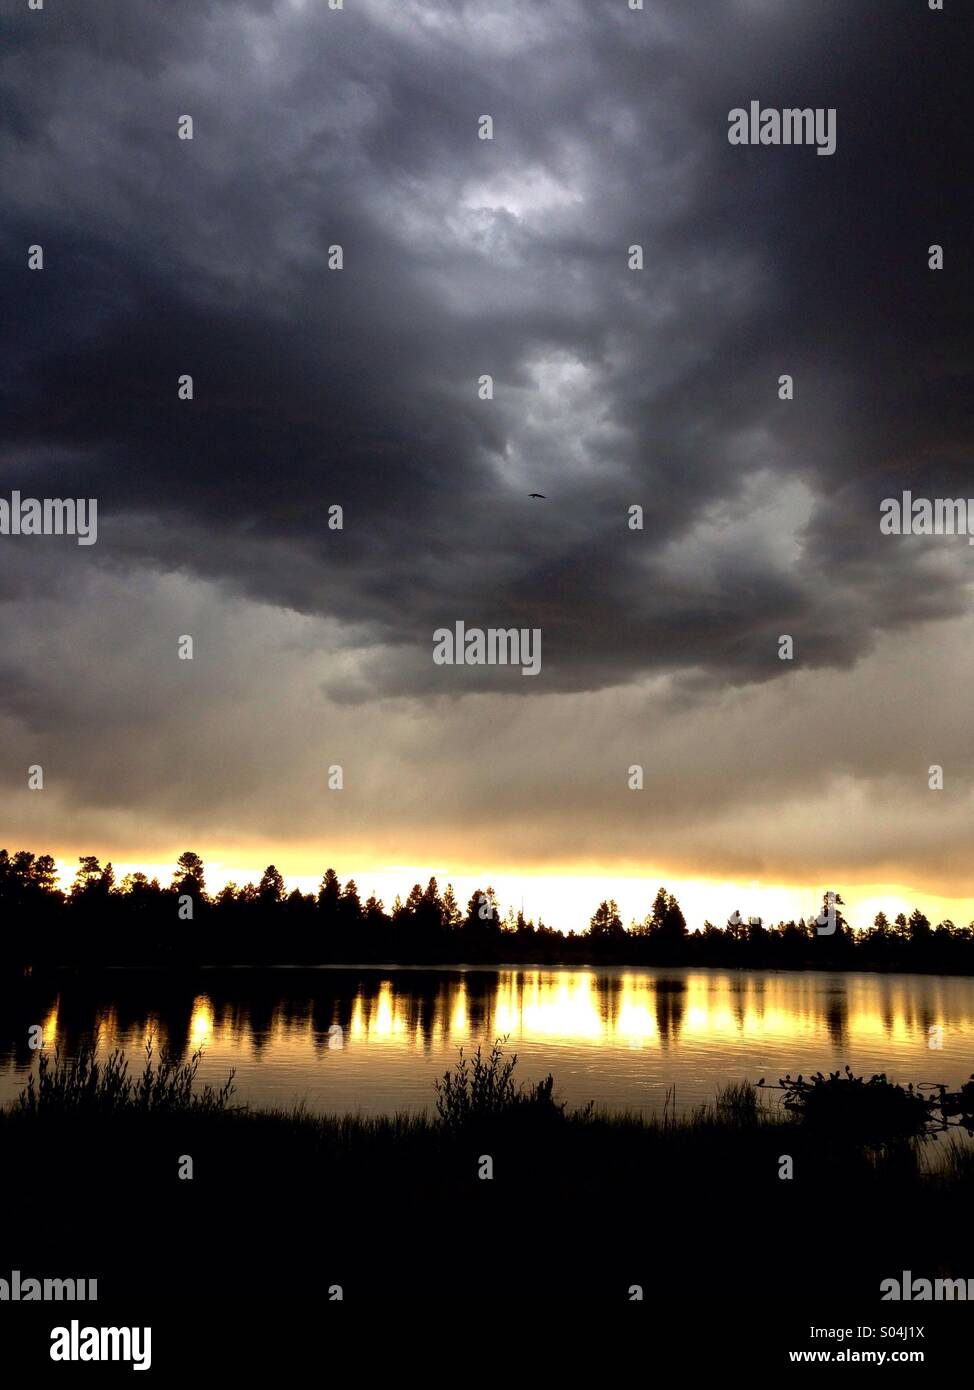 Lake with clouds at sunset - Stock Image